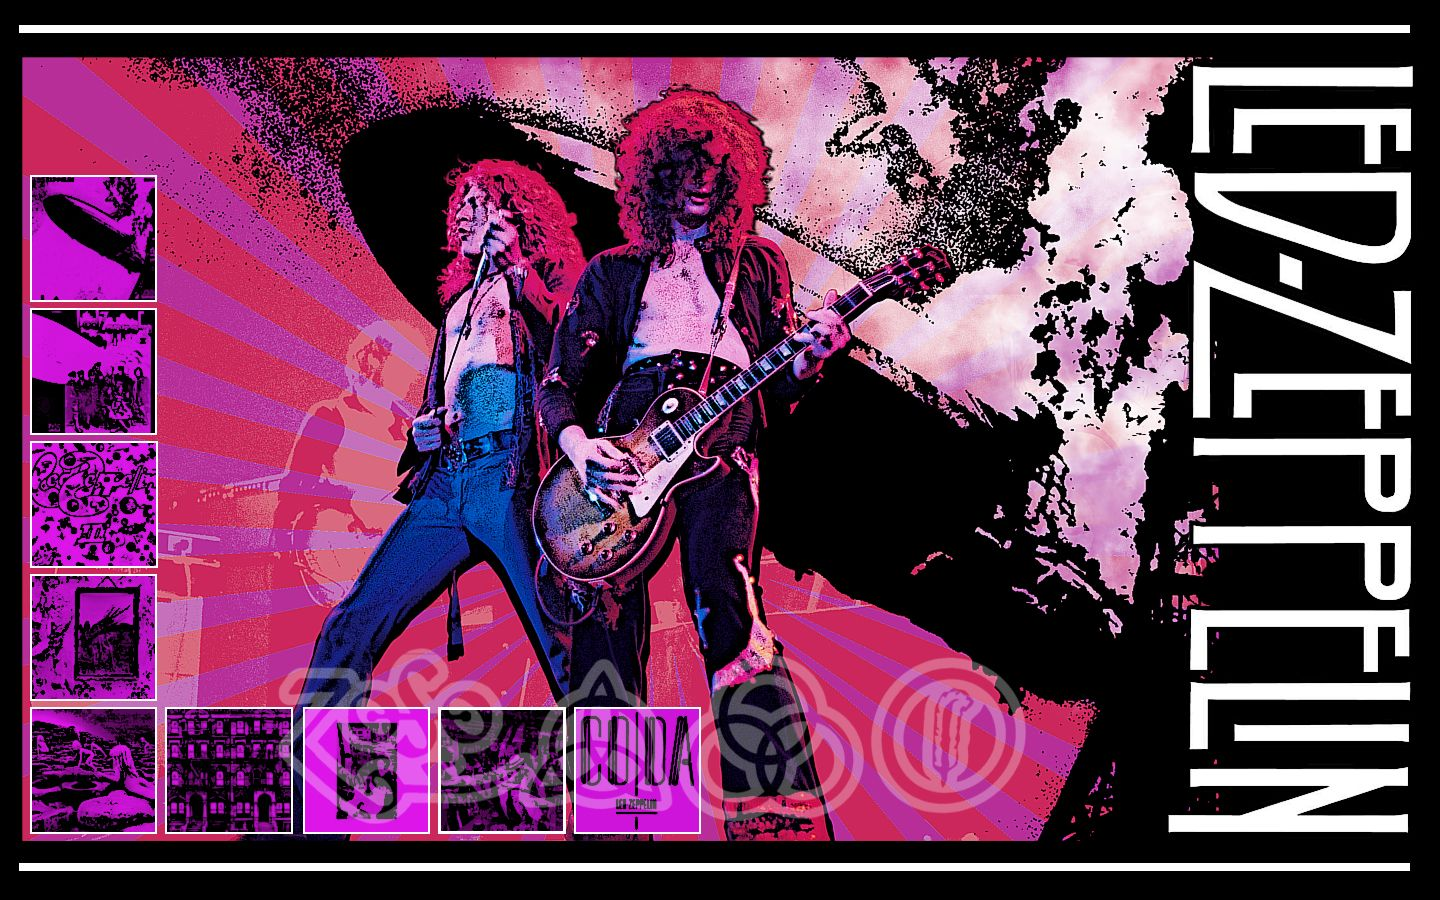 8 Awesome Led Zeppelin Hd Wallpaper For Your Pc Desktop Or Mac